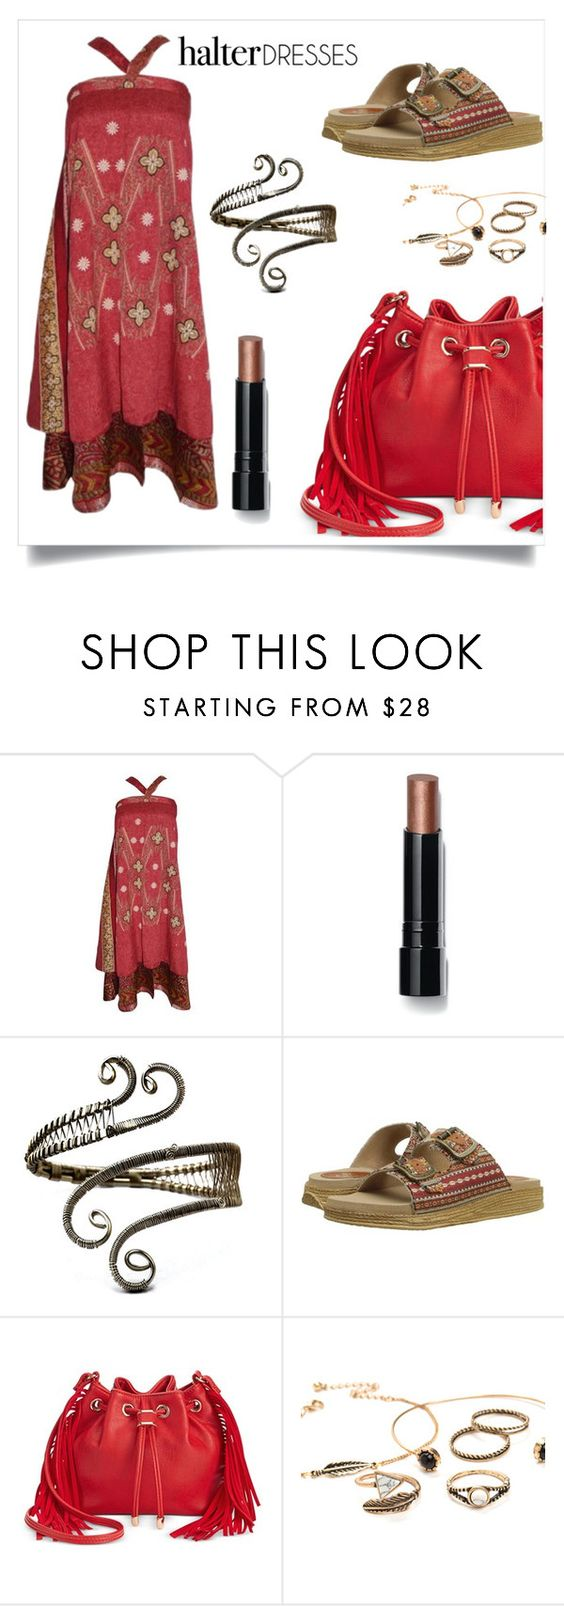 """""""boho"""" by im-karla-with-a-k ❤ liked on Polyvore featuring Bobbi Brown Cosmetics, Sbicca, INC International Concepts and halterdresses"""